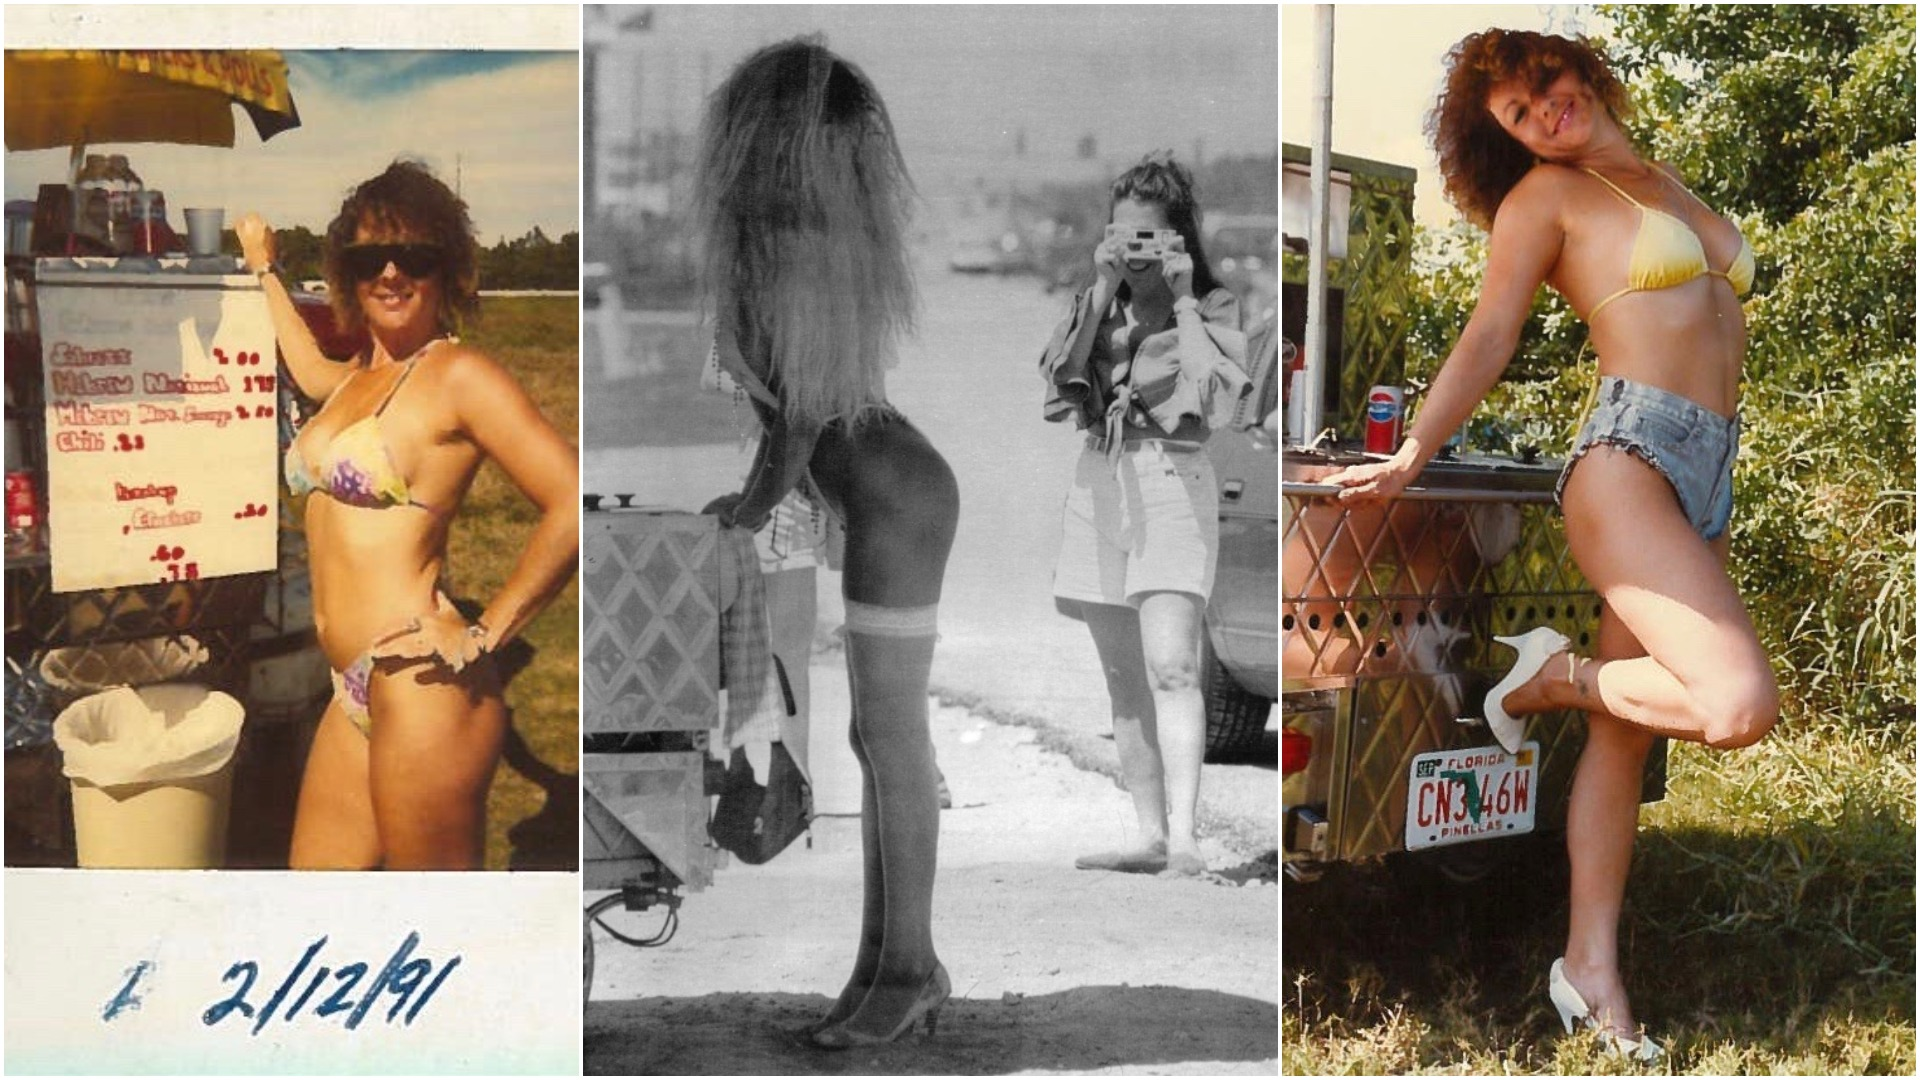 Gas Pump Girls Nude thong-clad hot dog girls once ruled florida streets. where